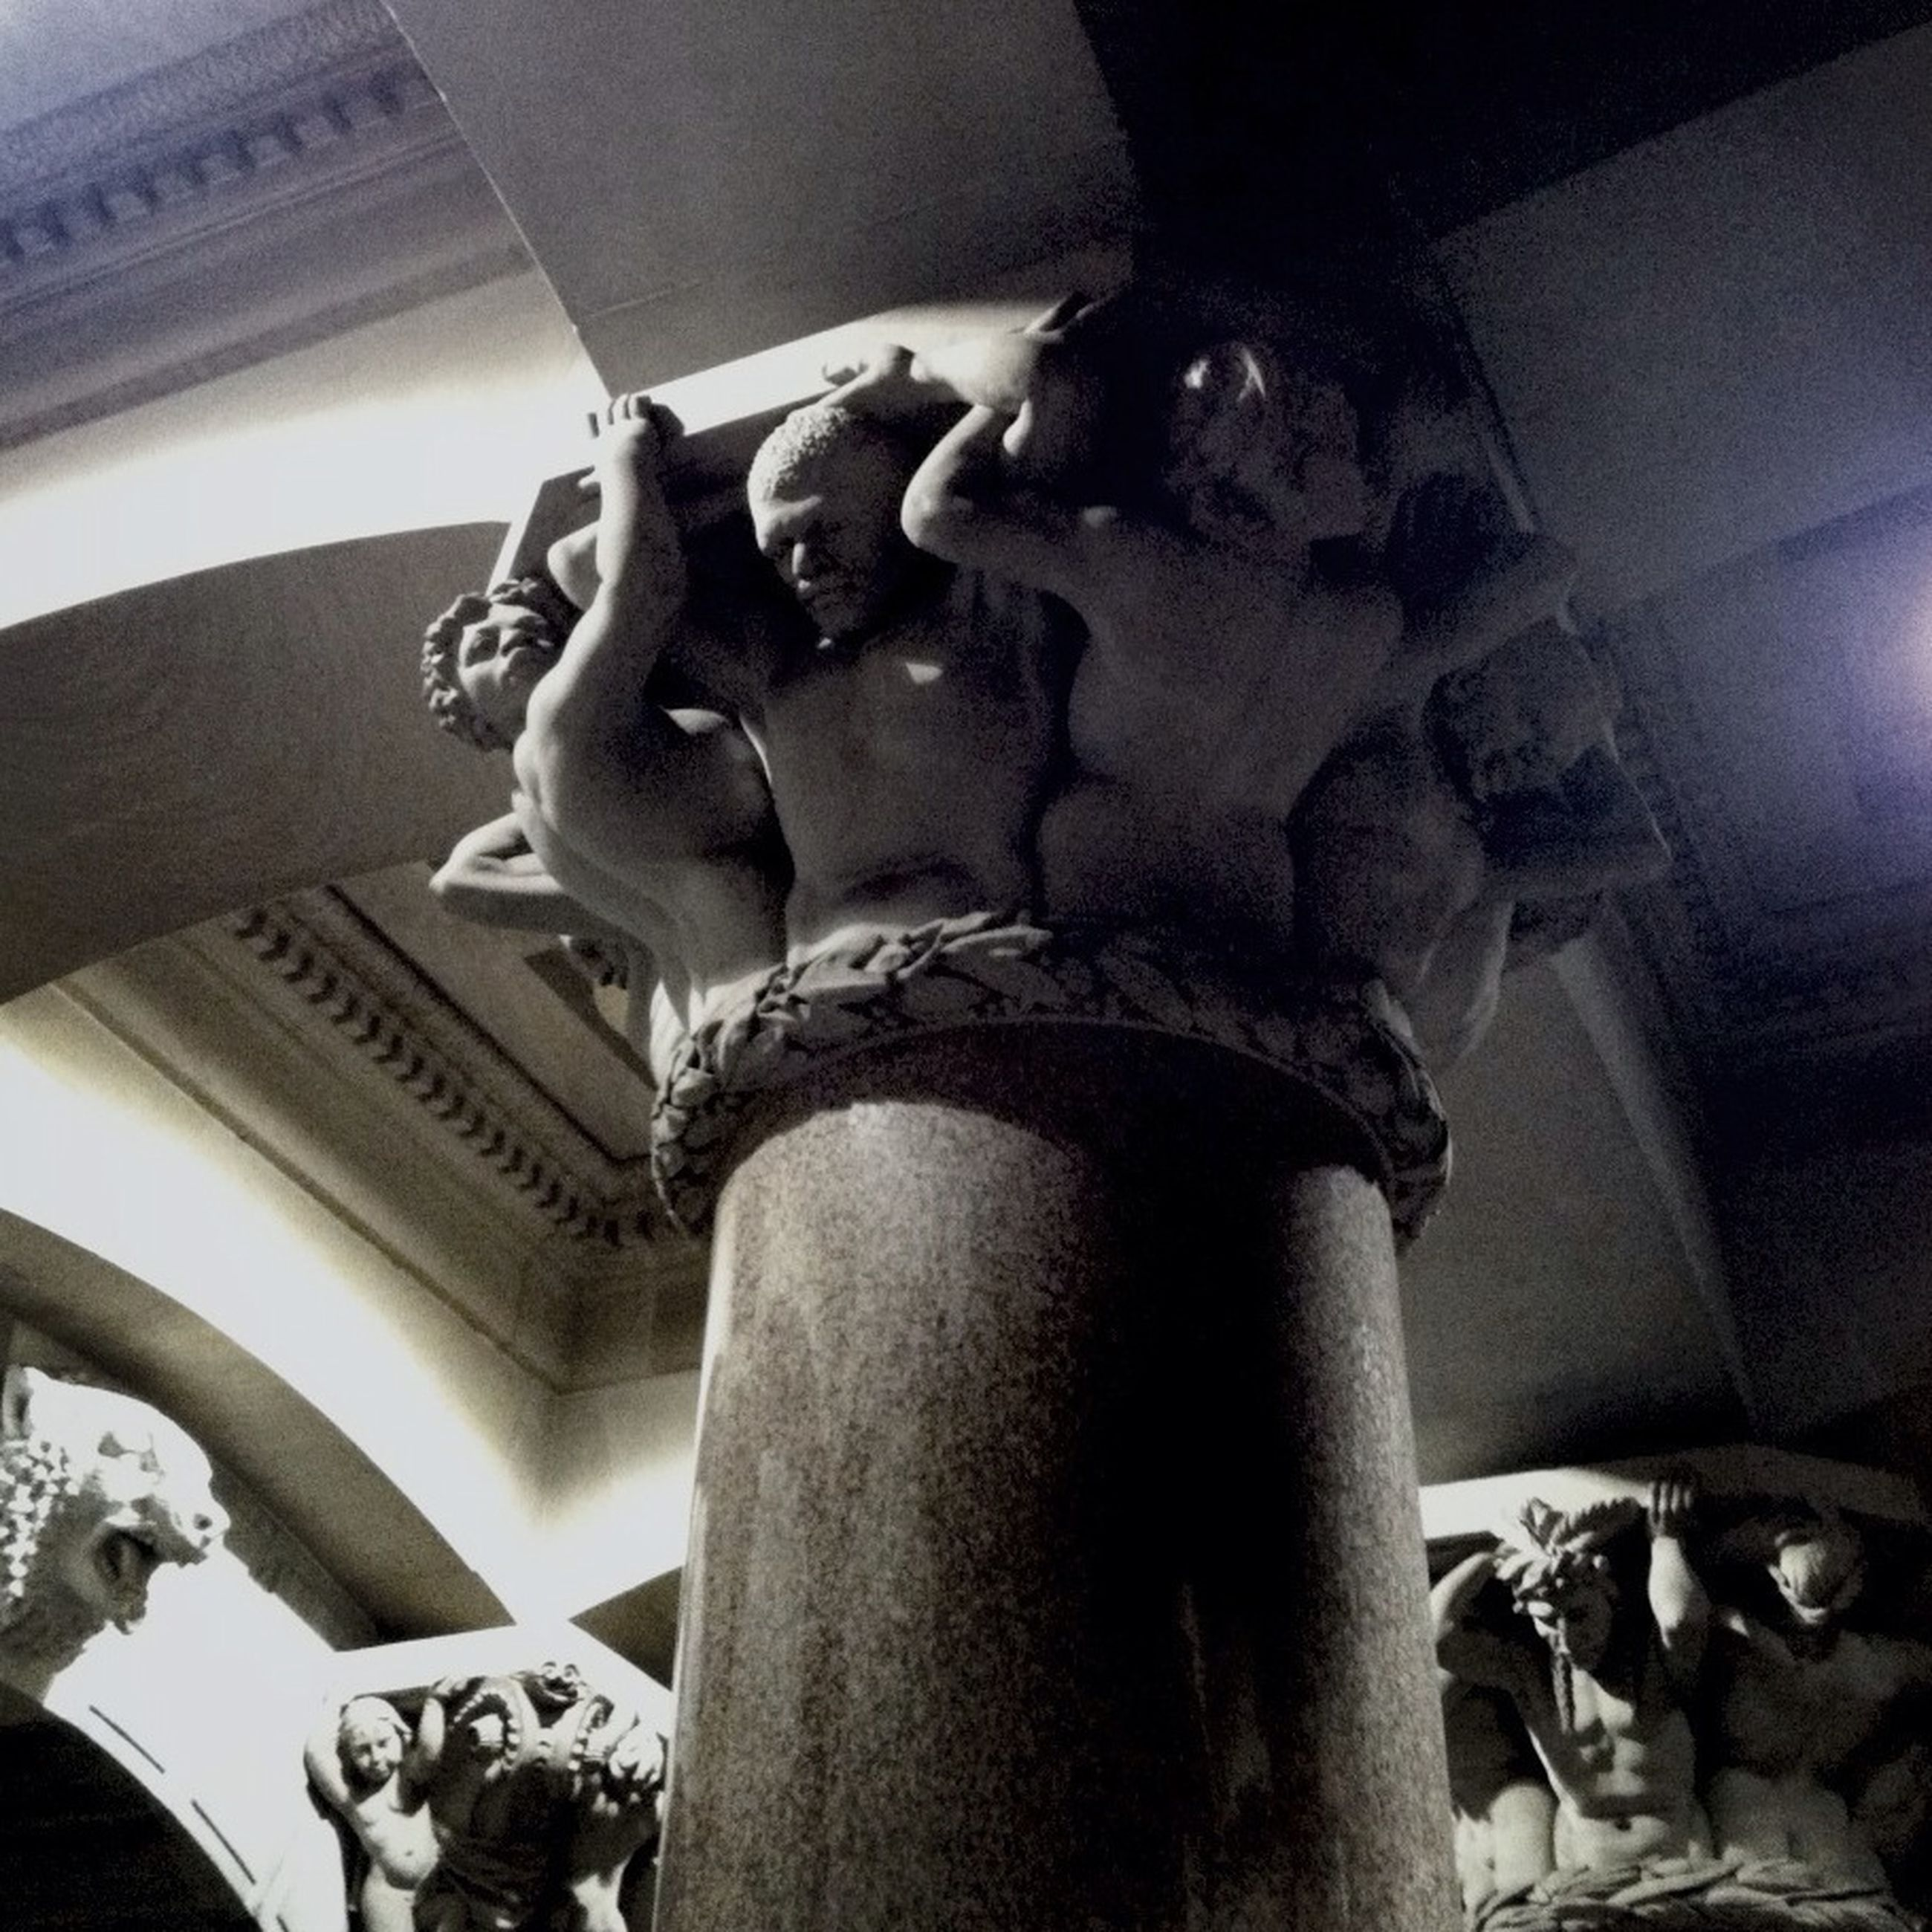 indoors, statue, sculpture, art and craft, low angle view, human representation, art, creativity, architecture, built structure, carving - craft product, history, architectural column, no people, animal representation, column, old, ceiling